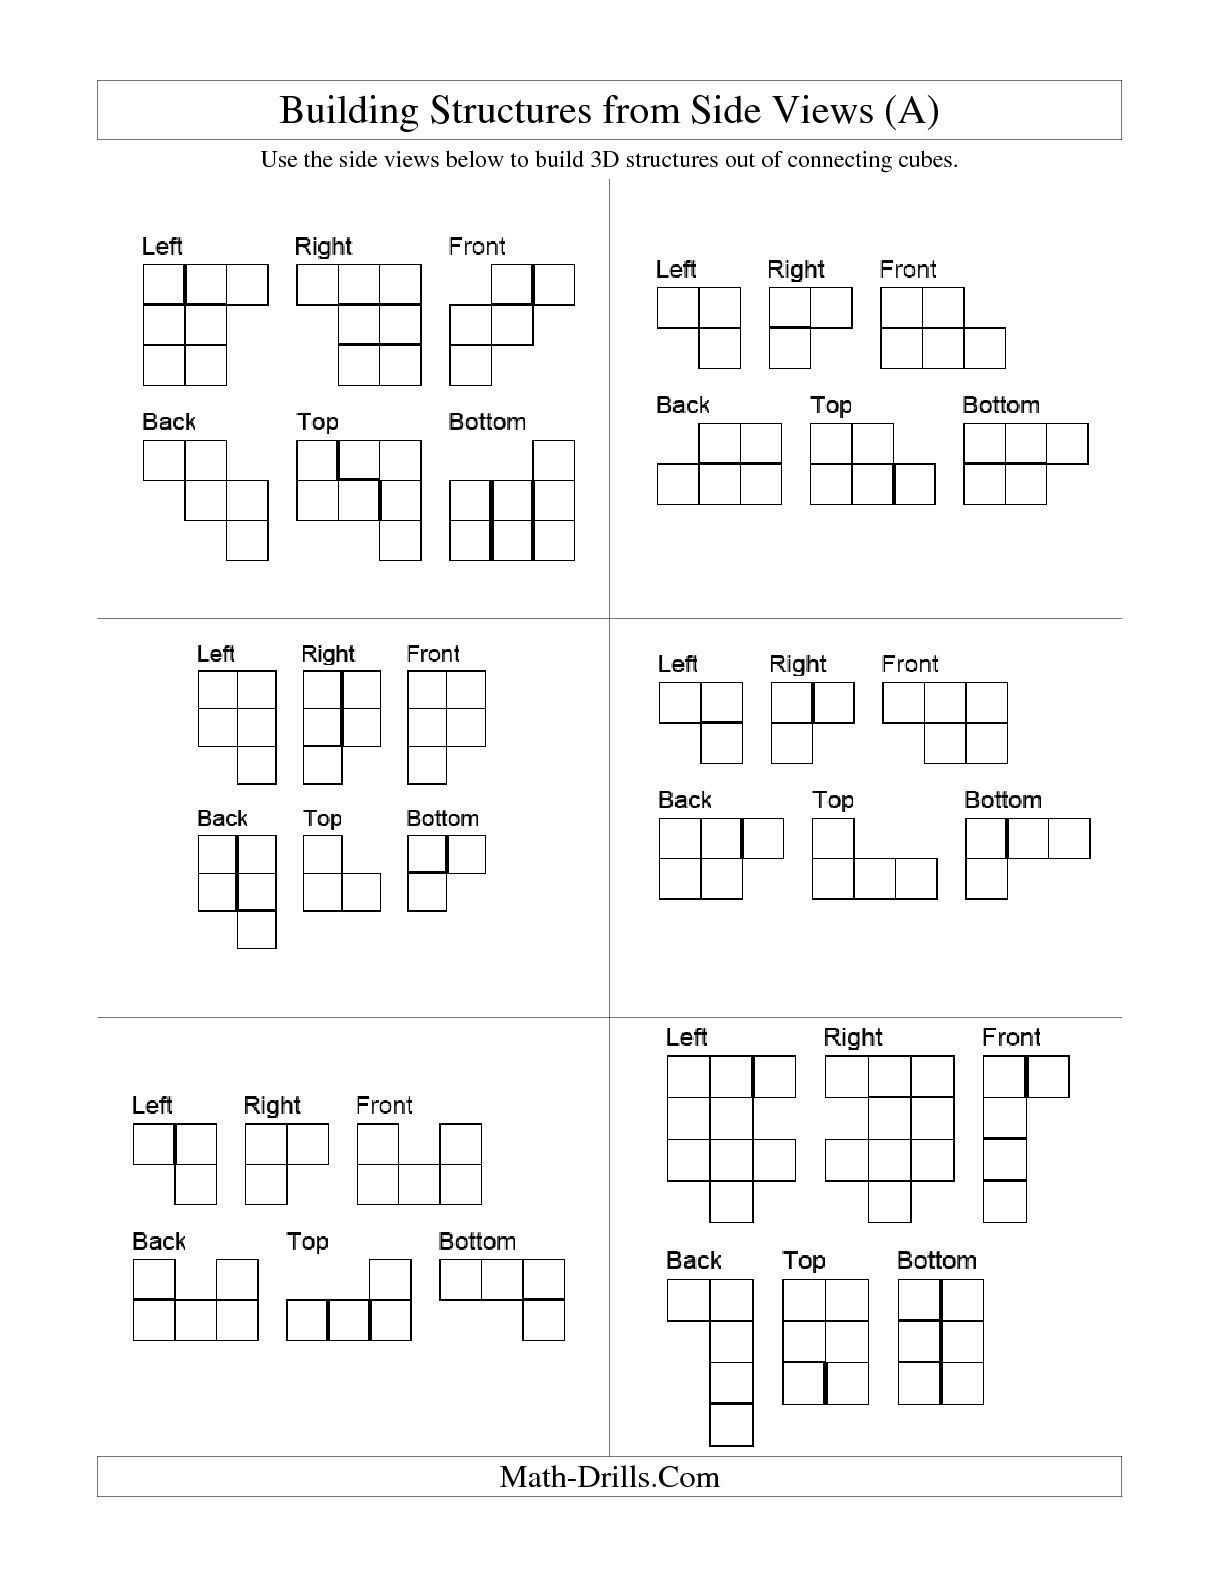 worksheet Cube Worksheet the building connecting cube structures from side views a math worksheet geometry